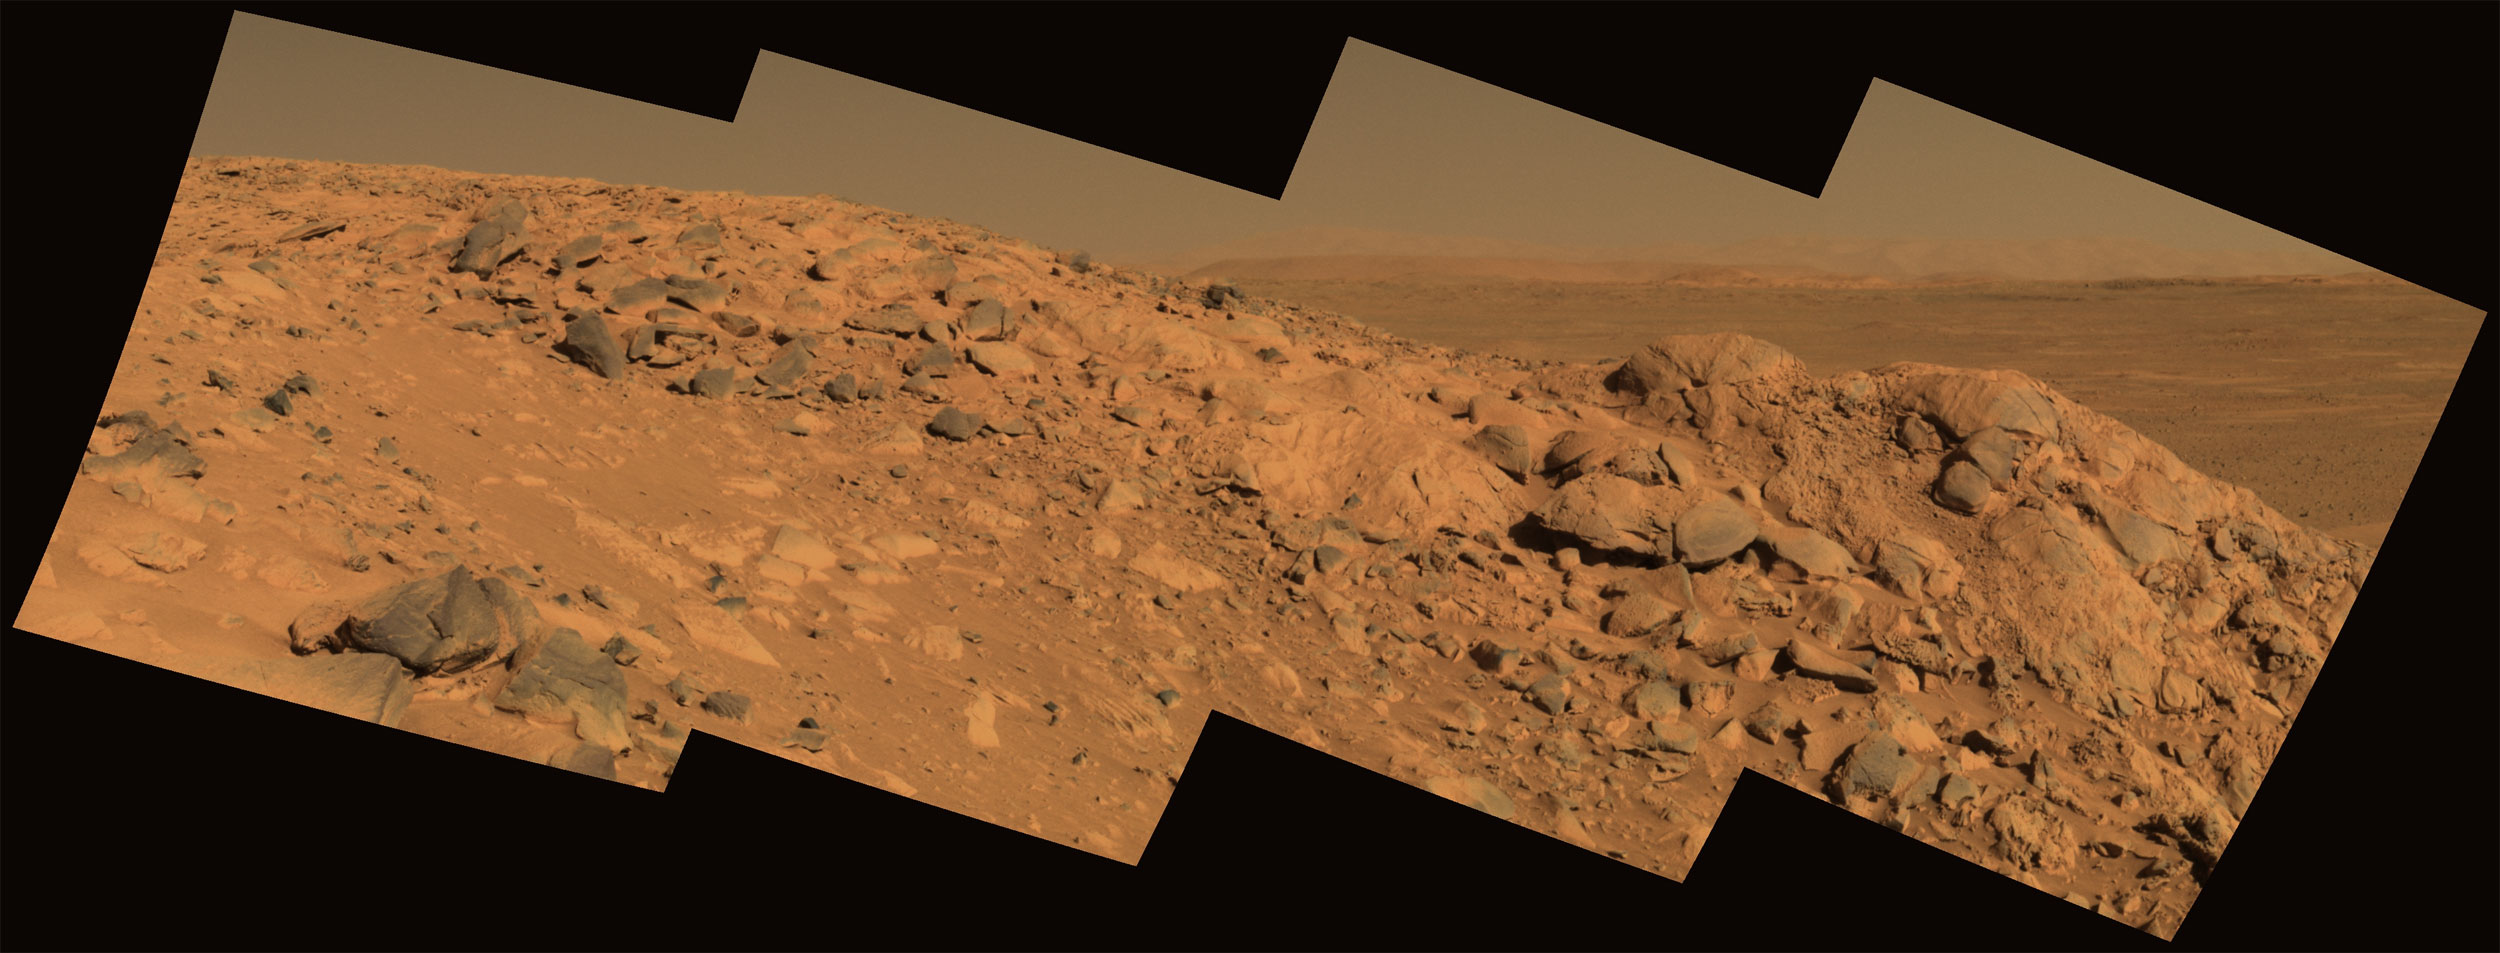 http://marsrovers.jpl.nasa.gov/gallery/press/spirit/20040818a/01-SSS-01-Mosaic-A223R1_br2.jpg